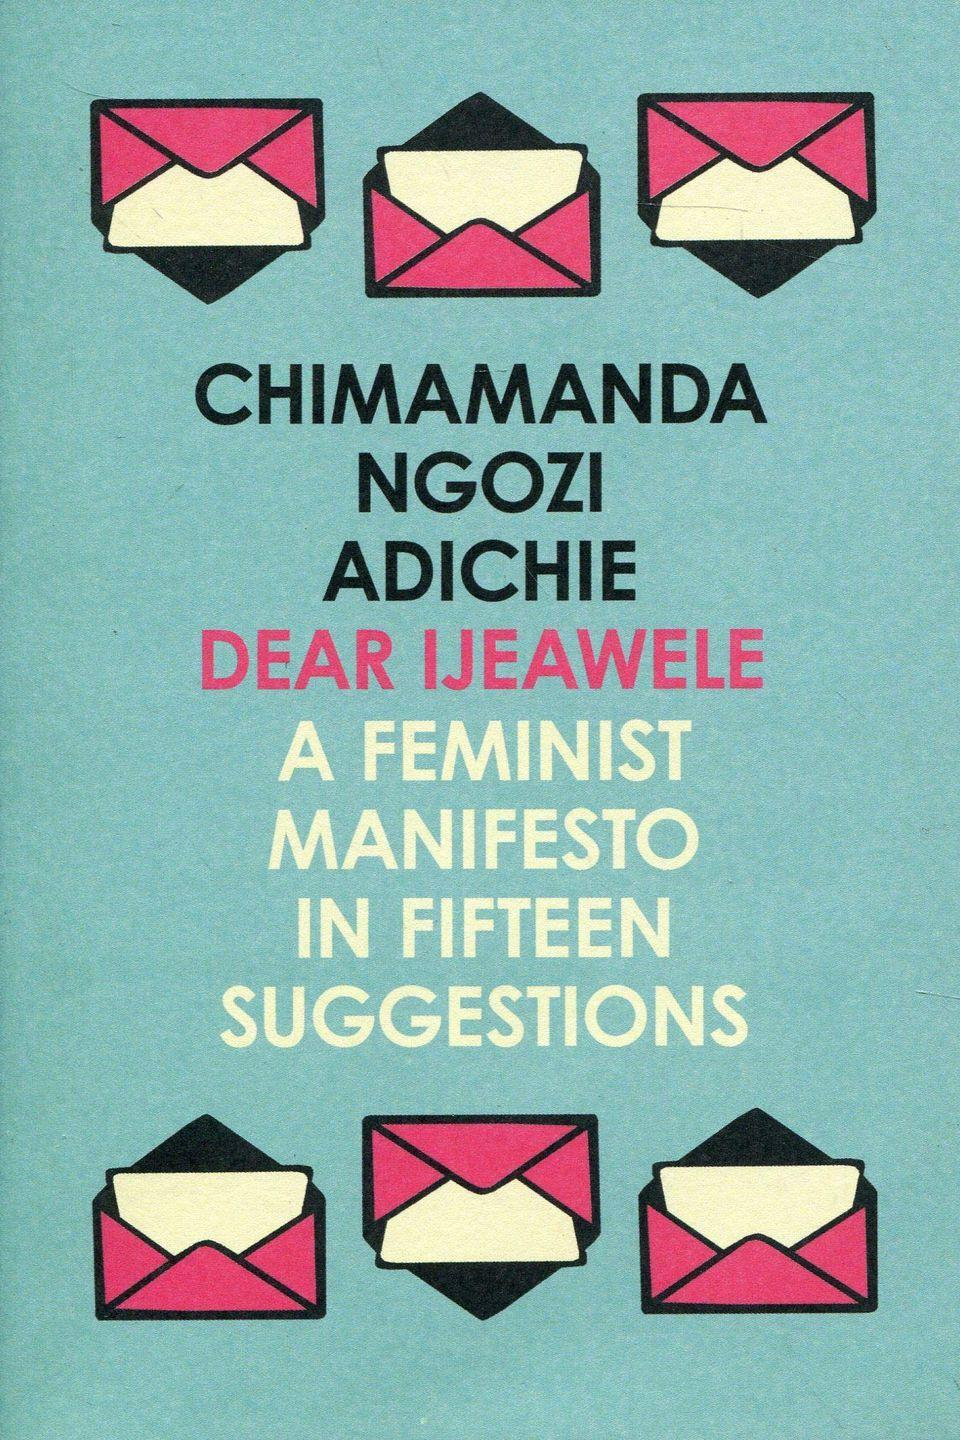 """<p><a class=""""link rapid-noclick-resp"""" href=""""https://www.amazon.co.uk/Ijeawele-Feminist-Manifesto-Fifteen-Suggestions/dp/0008241031?tag=hearstuk-yahoo-21&ascsubtag=%5Bartid%7C1927.g.35935432%5Bsrc%7Cyahoo-uk"""" rel=""""nofollow noopener"""" target=""""_blank"""" data-ylk=""""slk:SHOP NOW"""">SHOP NOW </a></p><p>We Should All Be Feminists is arguably Chimamanda Ngozi Adichie's famous writing on feminism, but Dear Ijeawele is just as noteworthy. Created as a letter to a friend who asked for help on how to raise her daughter as a feminist, the book comprises 15 practical pieces of advice. Adichie's forthright, sage and warm voice shines bright throughout as she gets to the heart of what it means to be a woman today. </p>"""